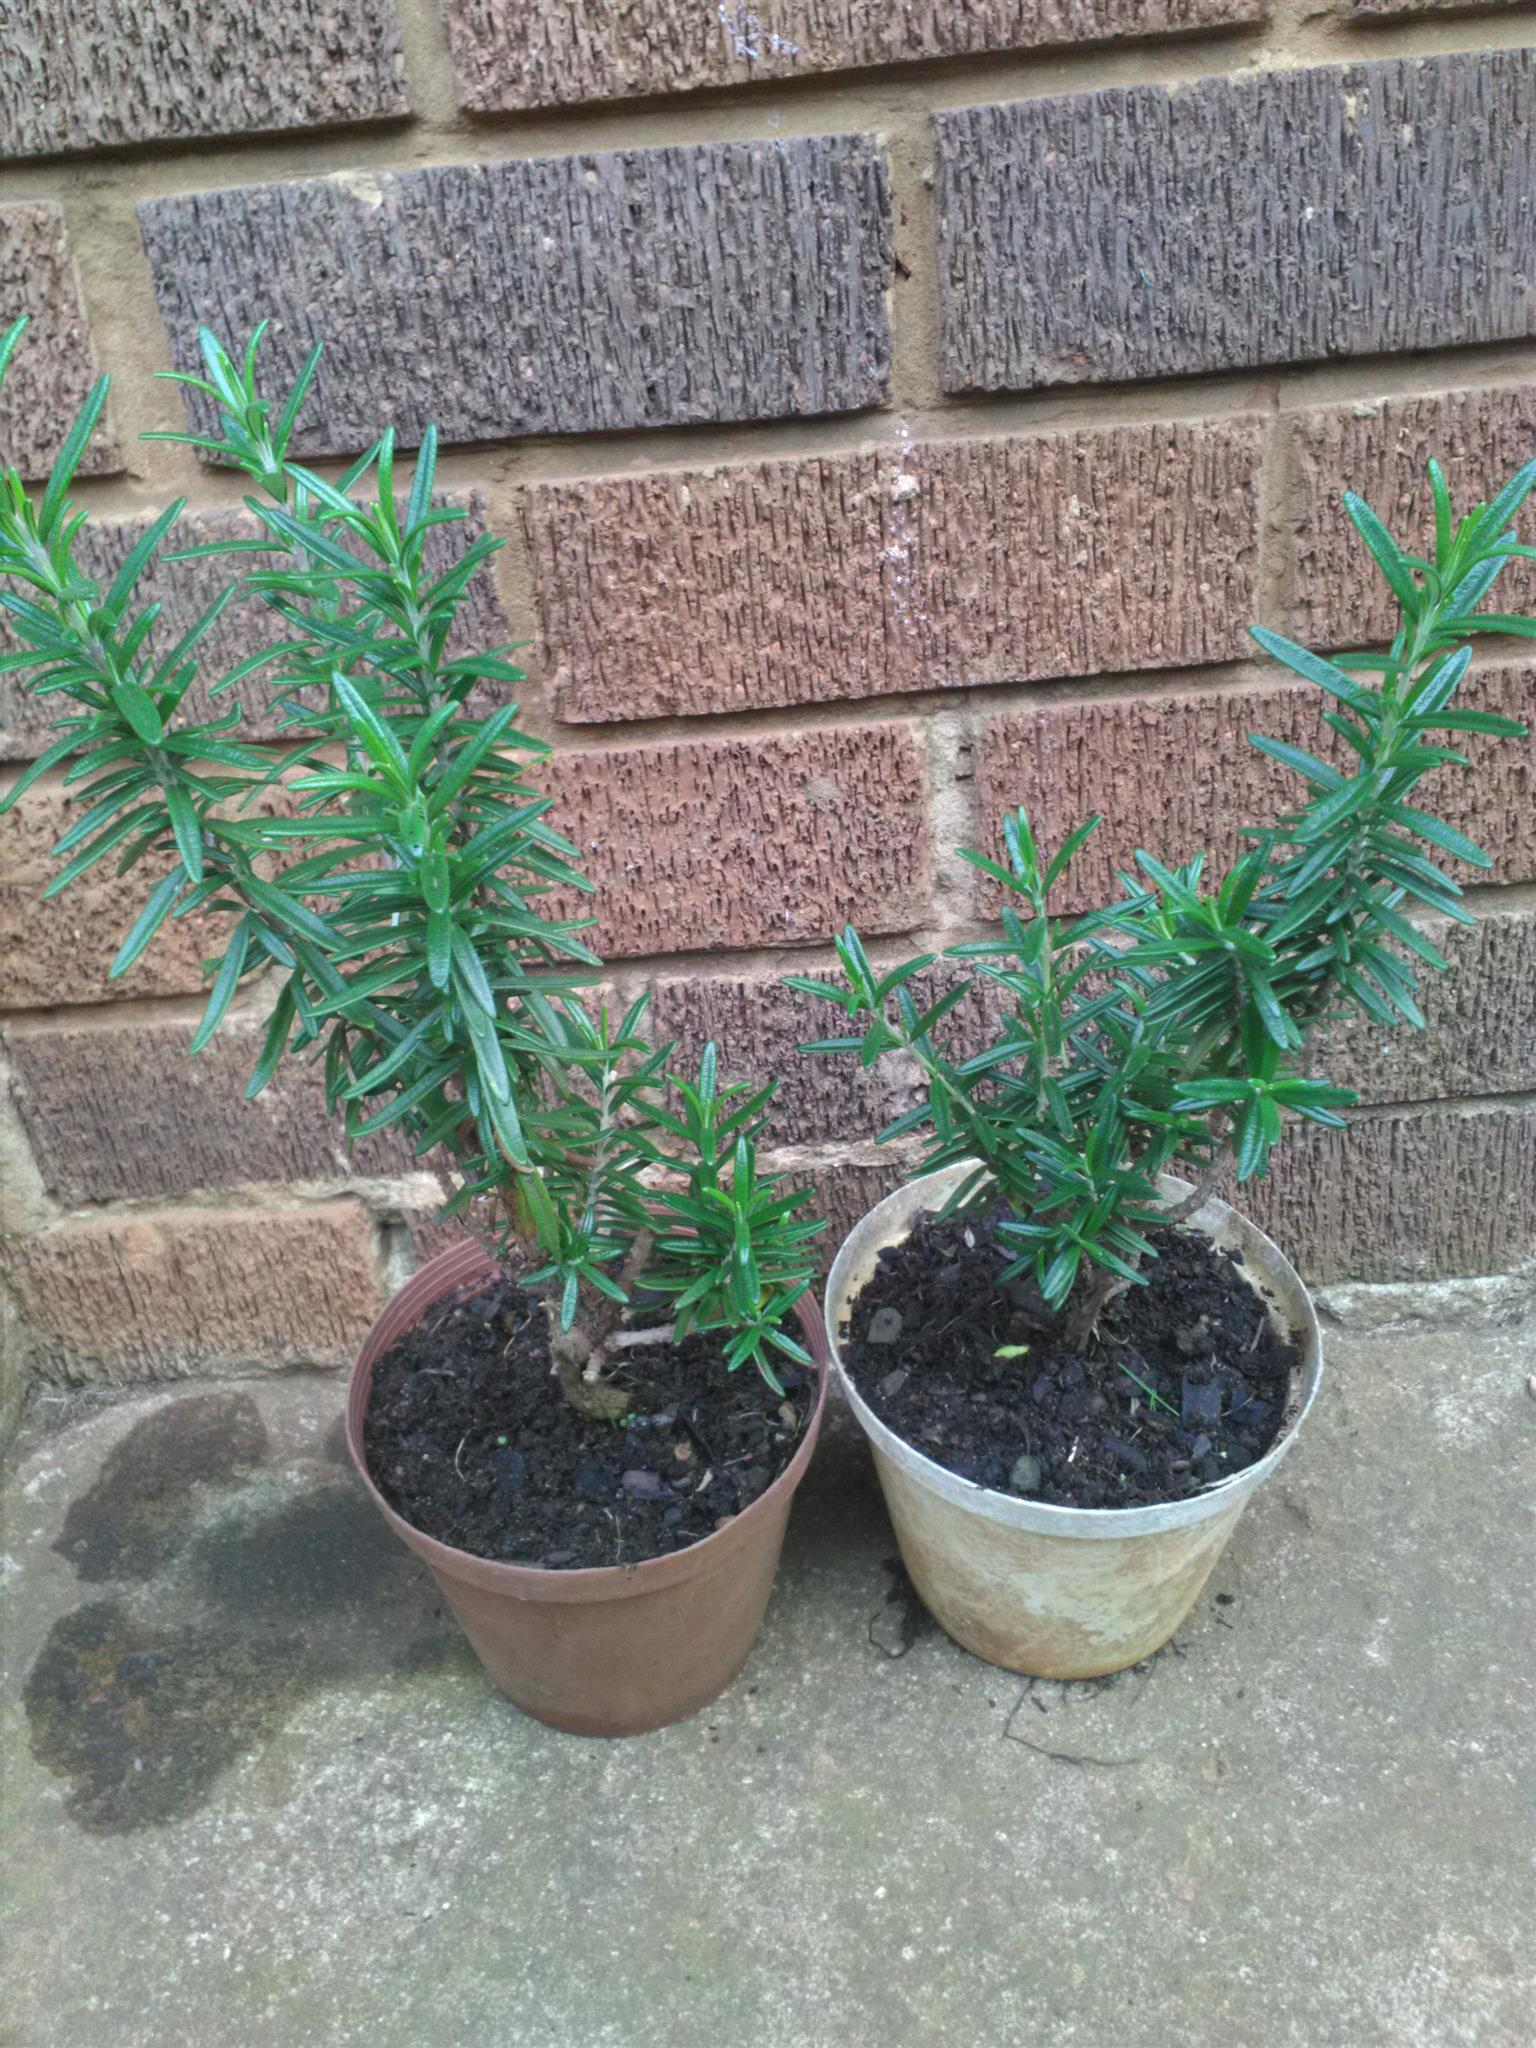 Rosemary plants for sale from R15